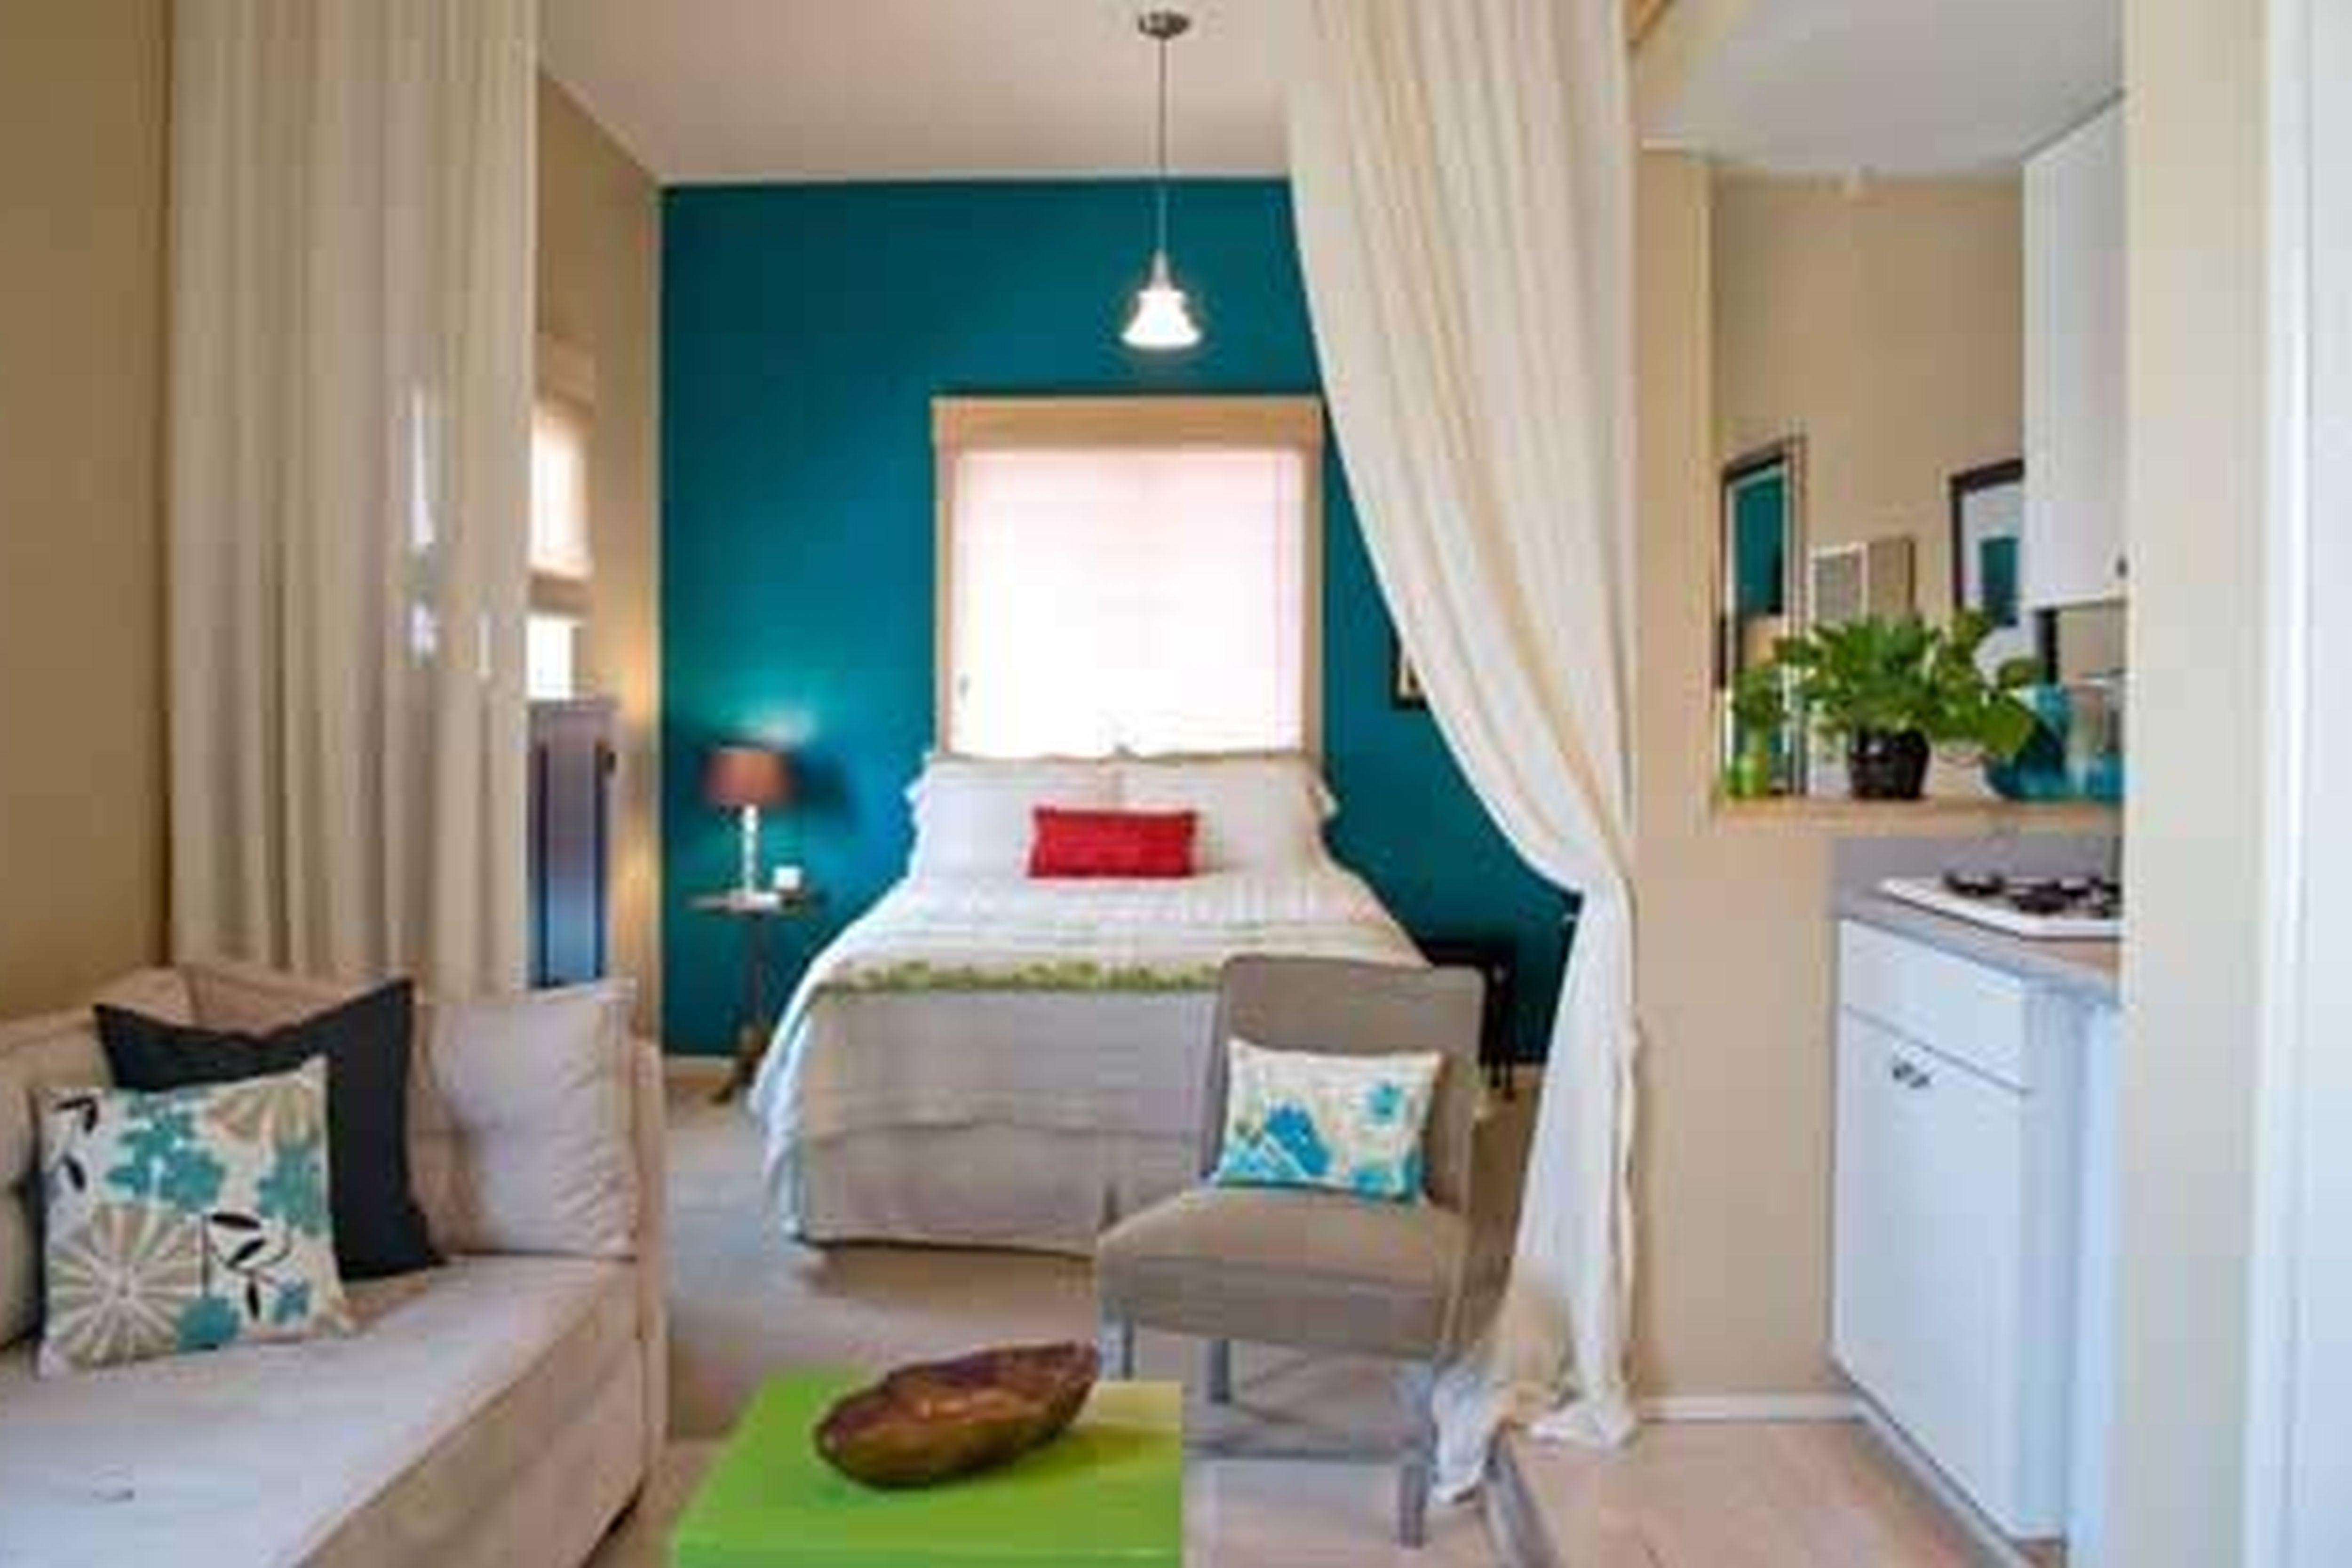 One Bedroom Decorating Ideas Home Design